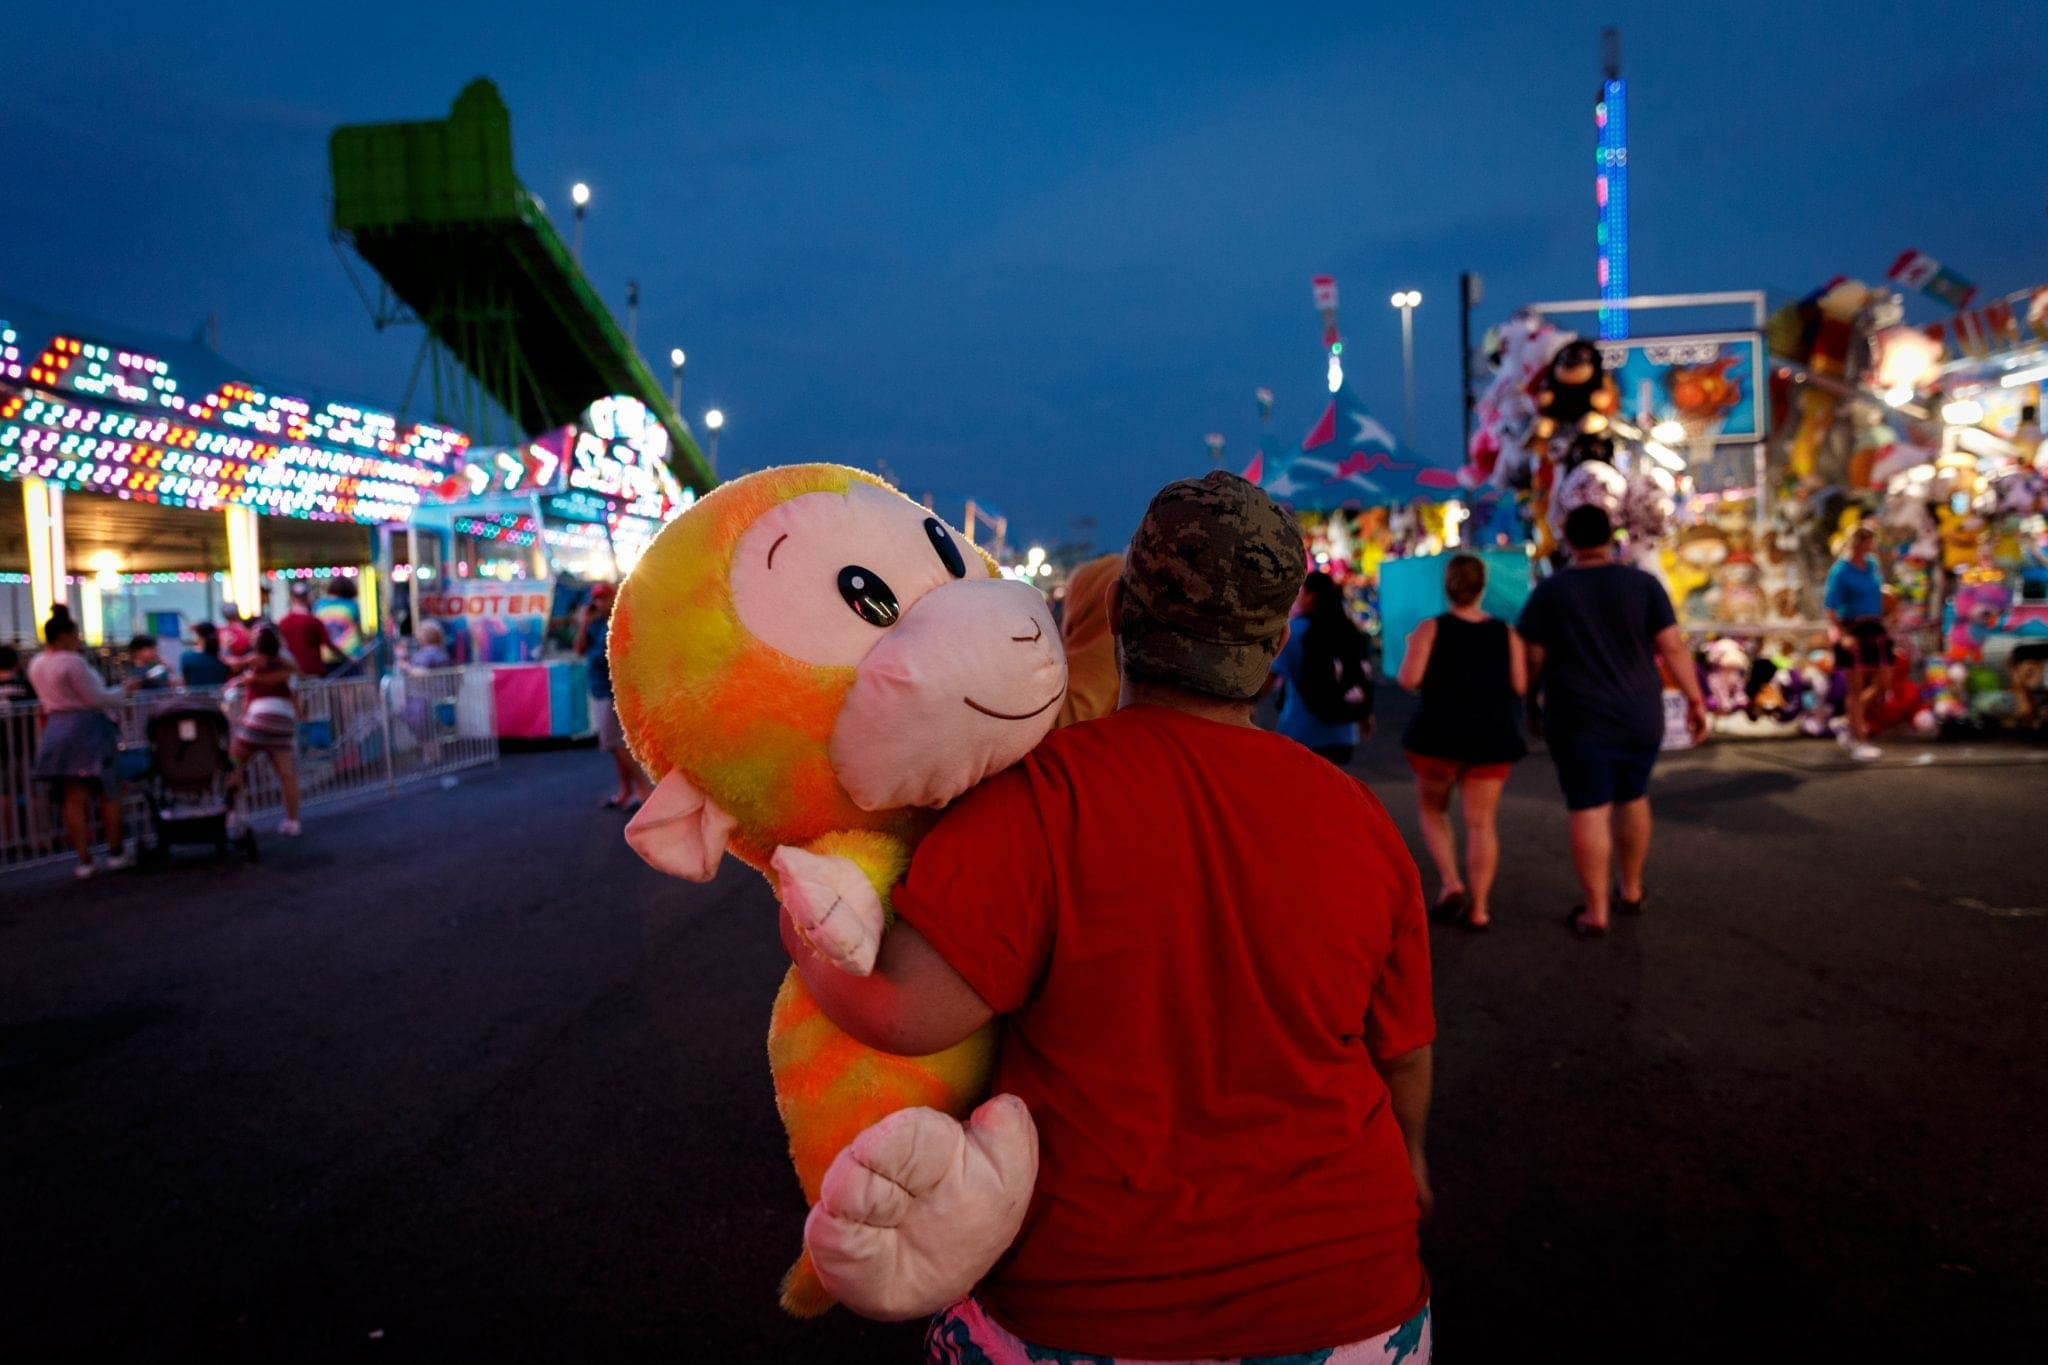 Scenes from the New York State Fair - A fairgoer takes home an oversized stuffed animal